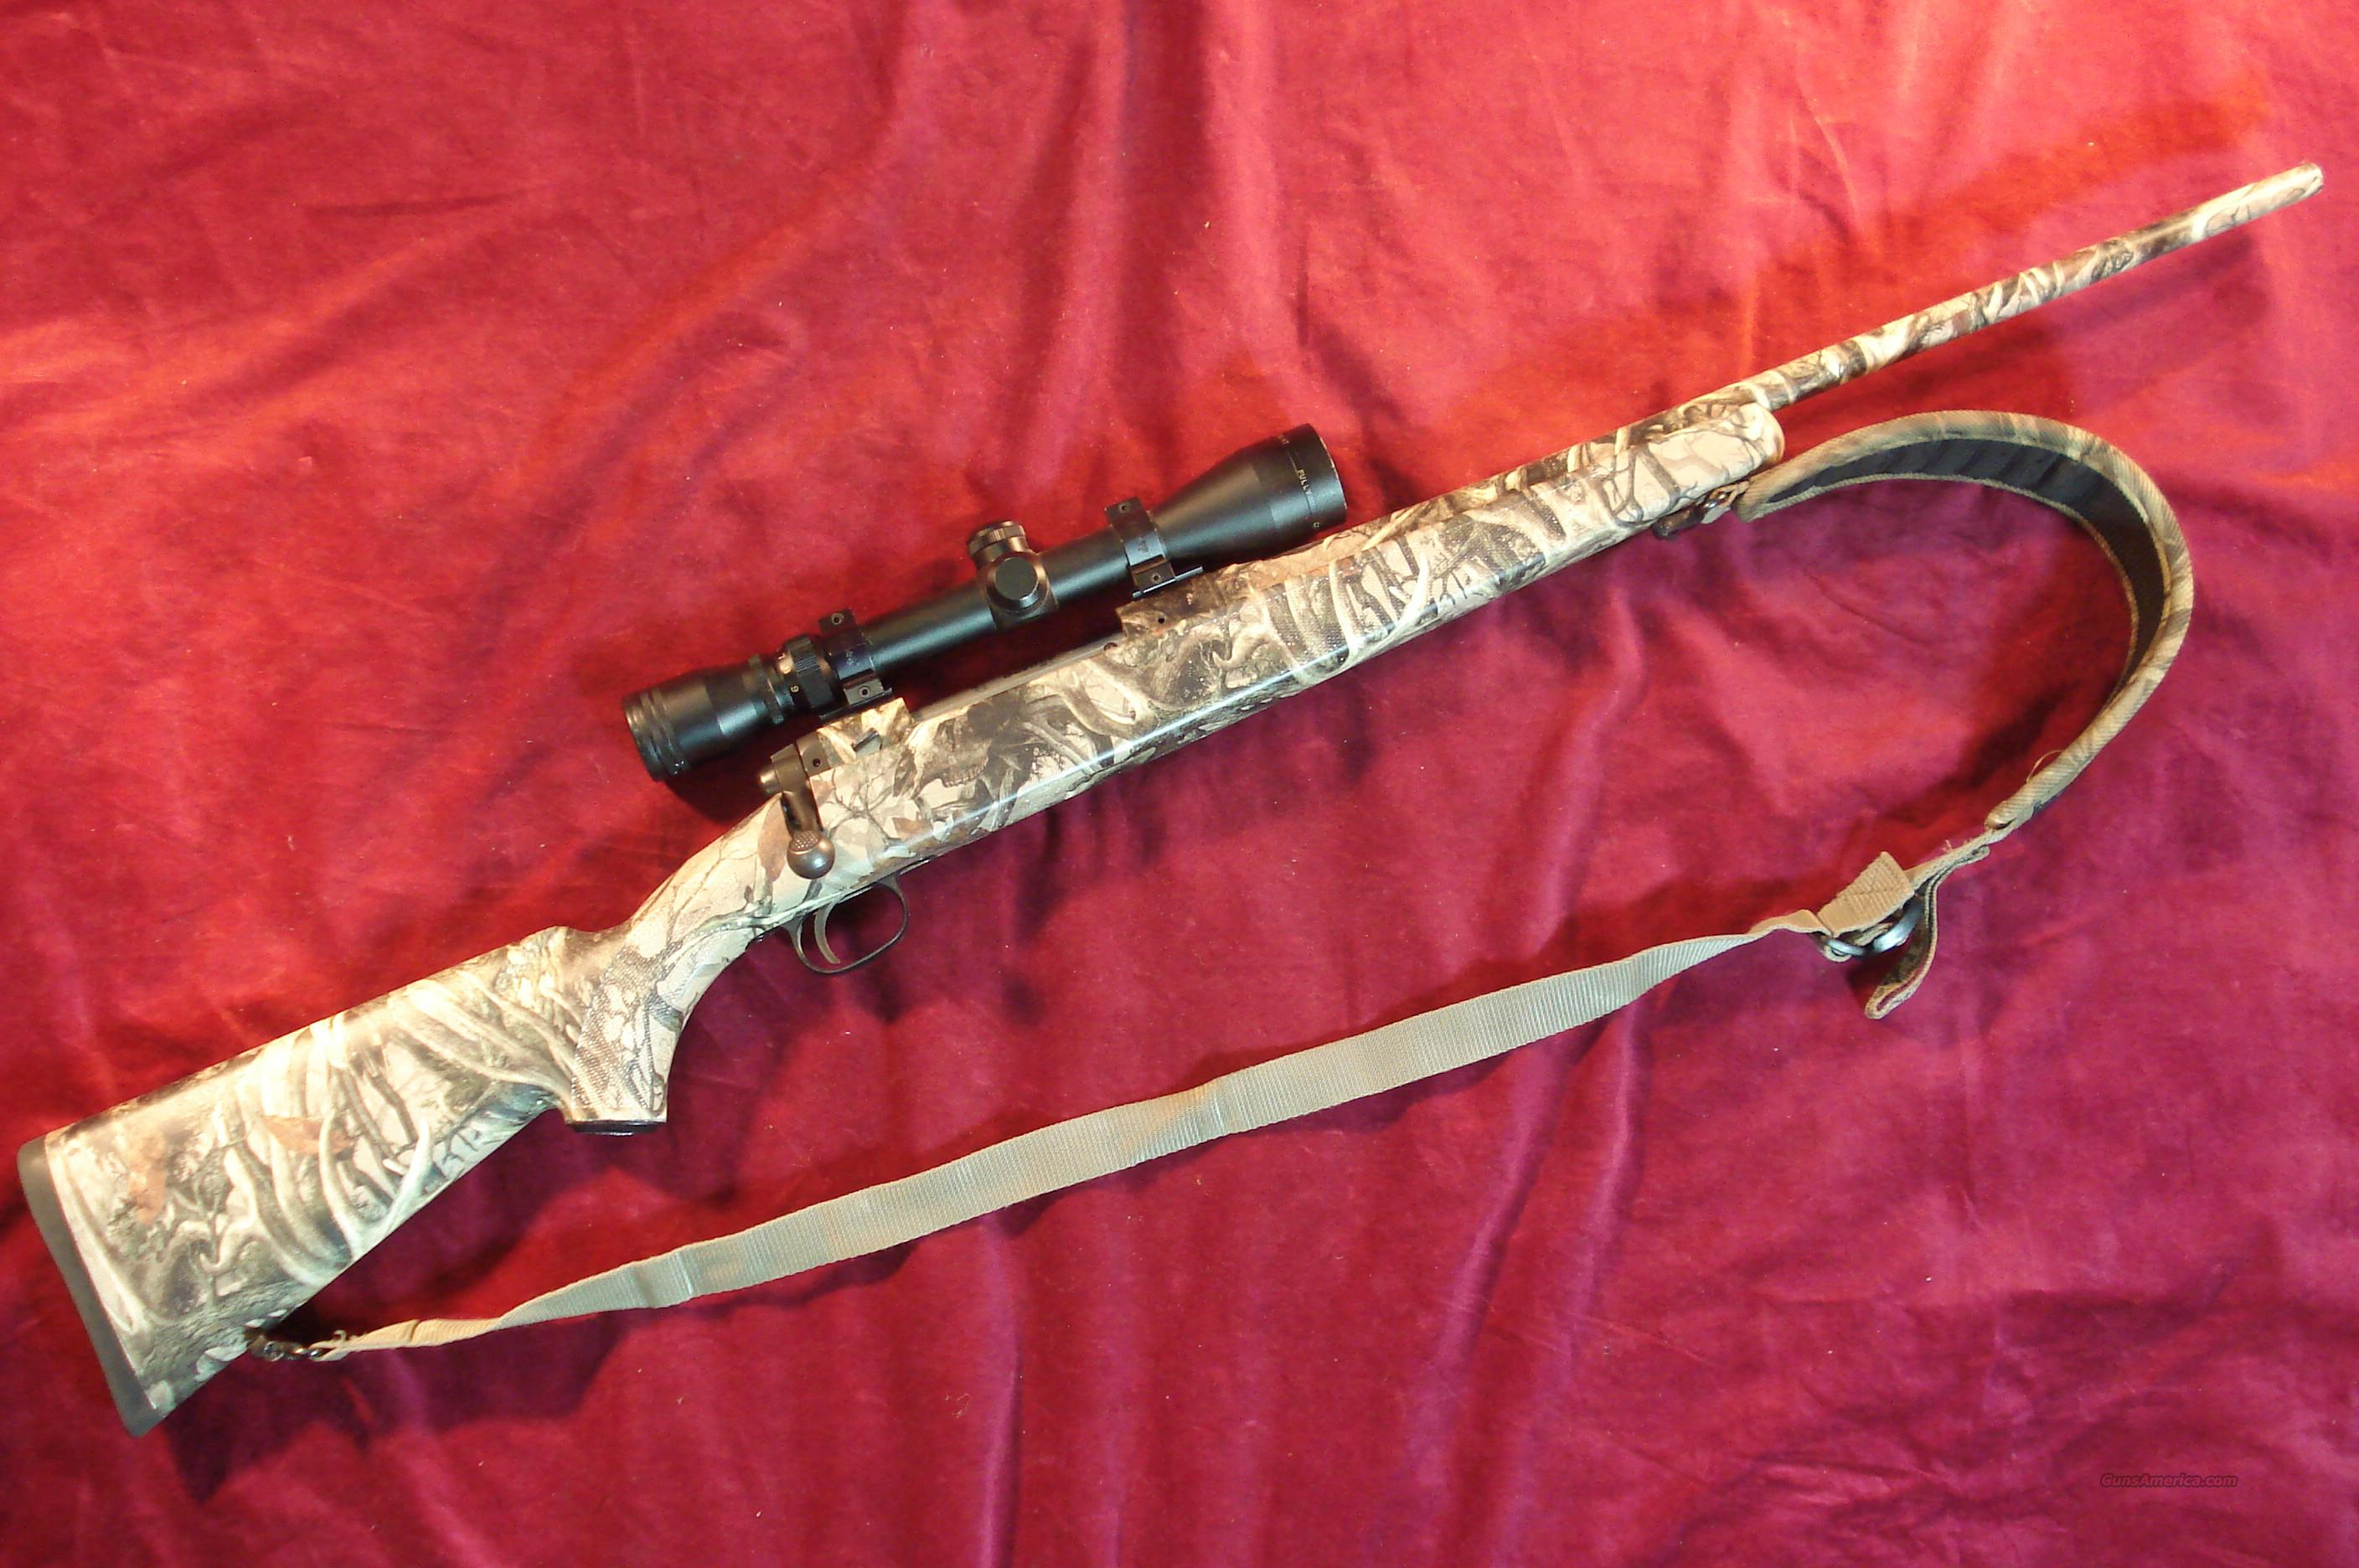 SAVAGE 110 30-06 CAMO STOCK W/SIMMONS 3X9 SCOPE USED  Guns > Rifles > Savage Rifles > Standard Bolt Action > Sporting